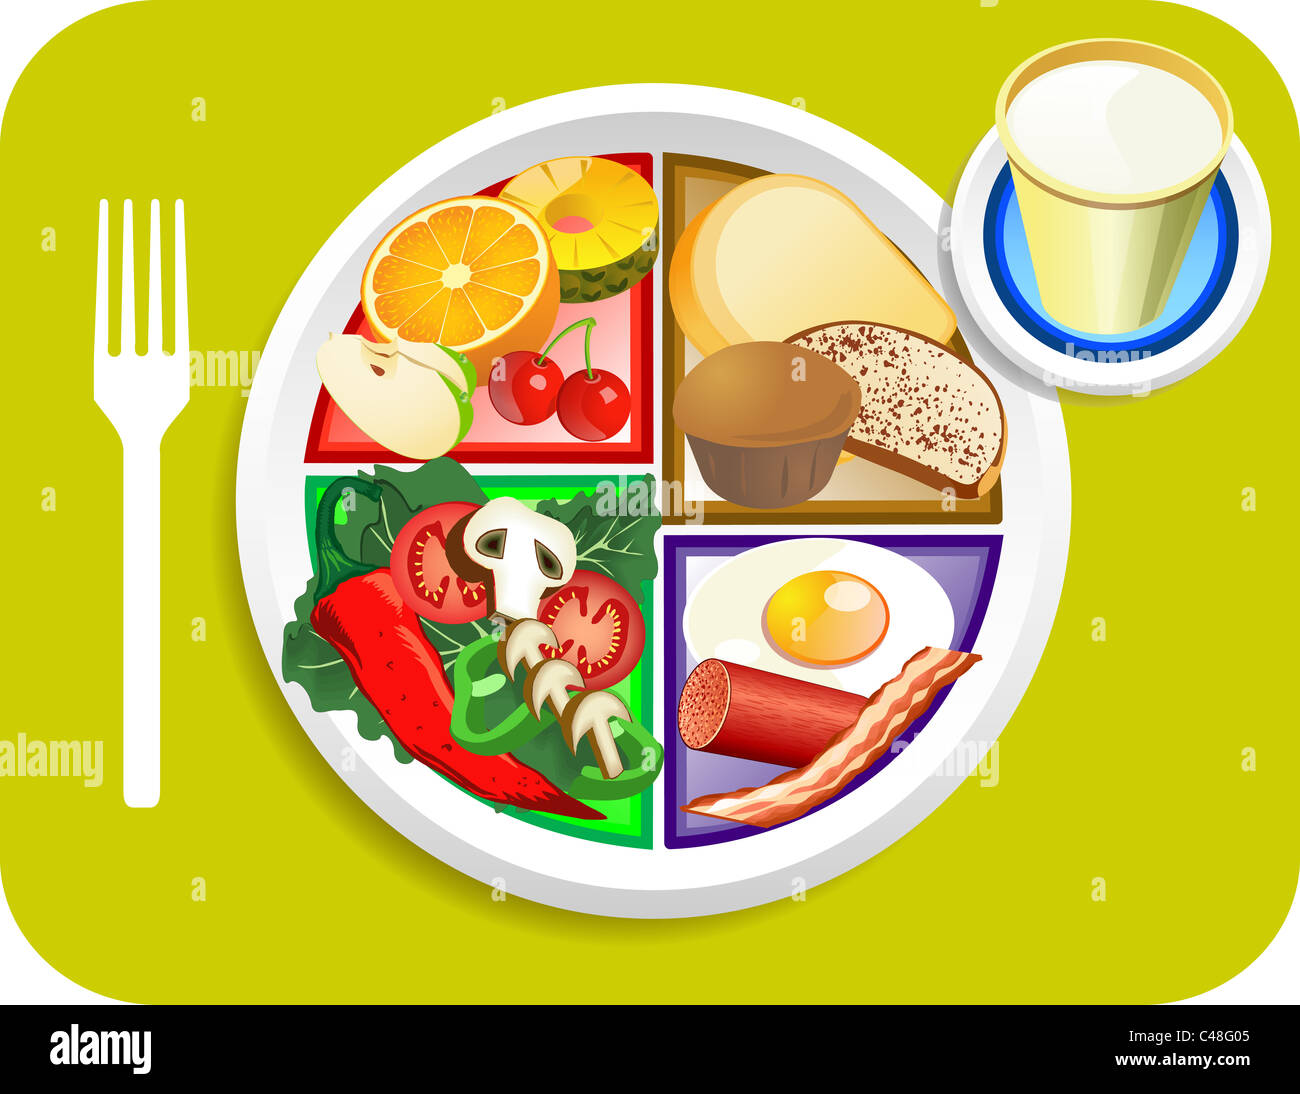 My Plate replaces food pyramid I have some labeled and some for breakfast lunch or dinner  sc 1 st  Alamy & My Plate replaces food pyramid I have some labeled and some for ...